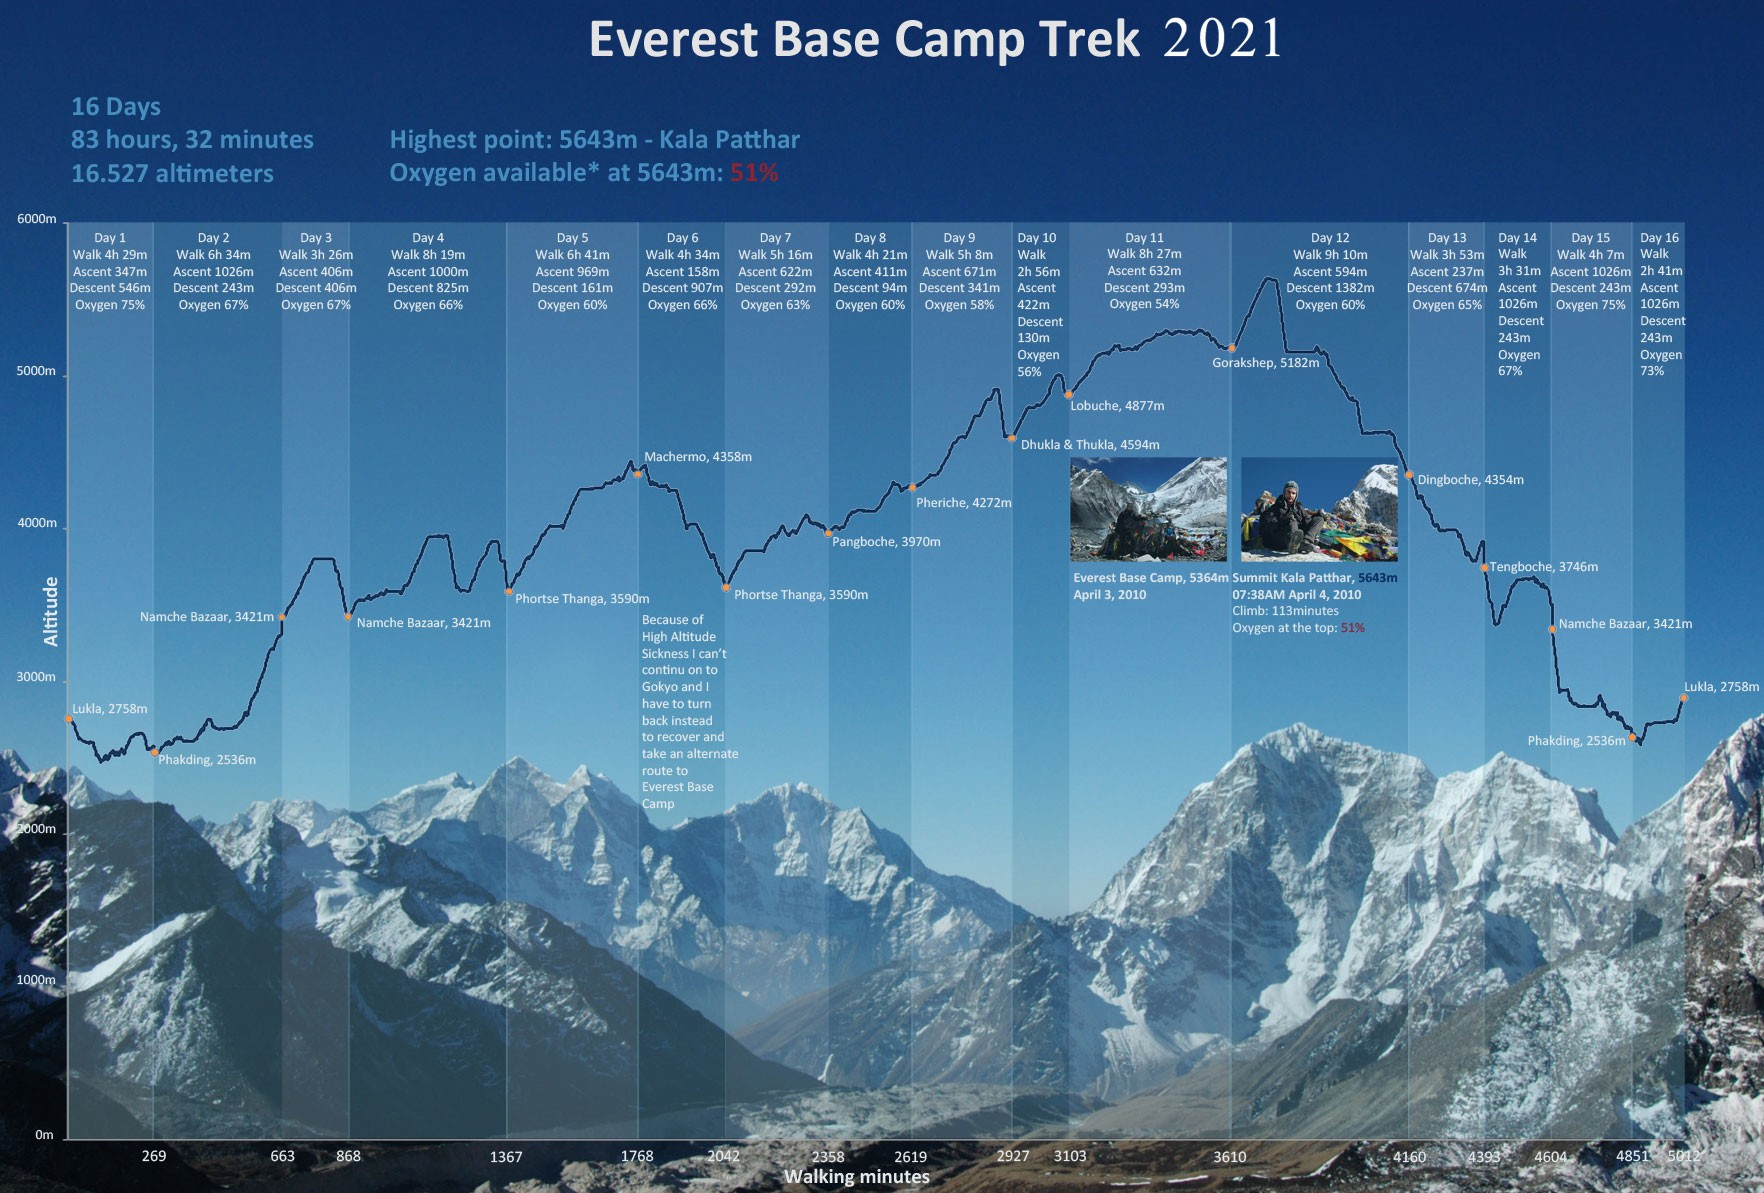 Time Duration Required for Everest Base Camp Trekking in 2021